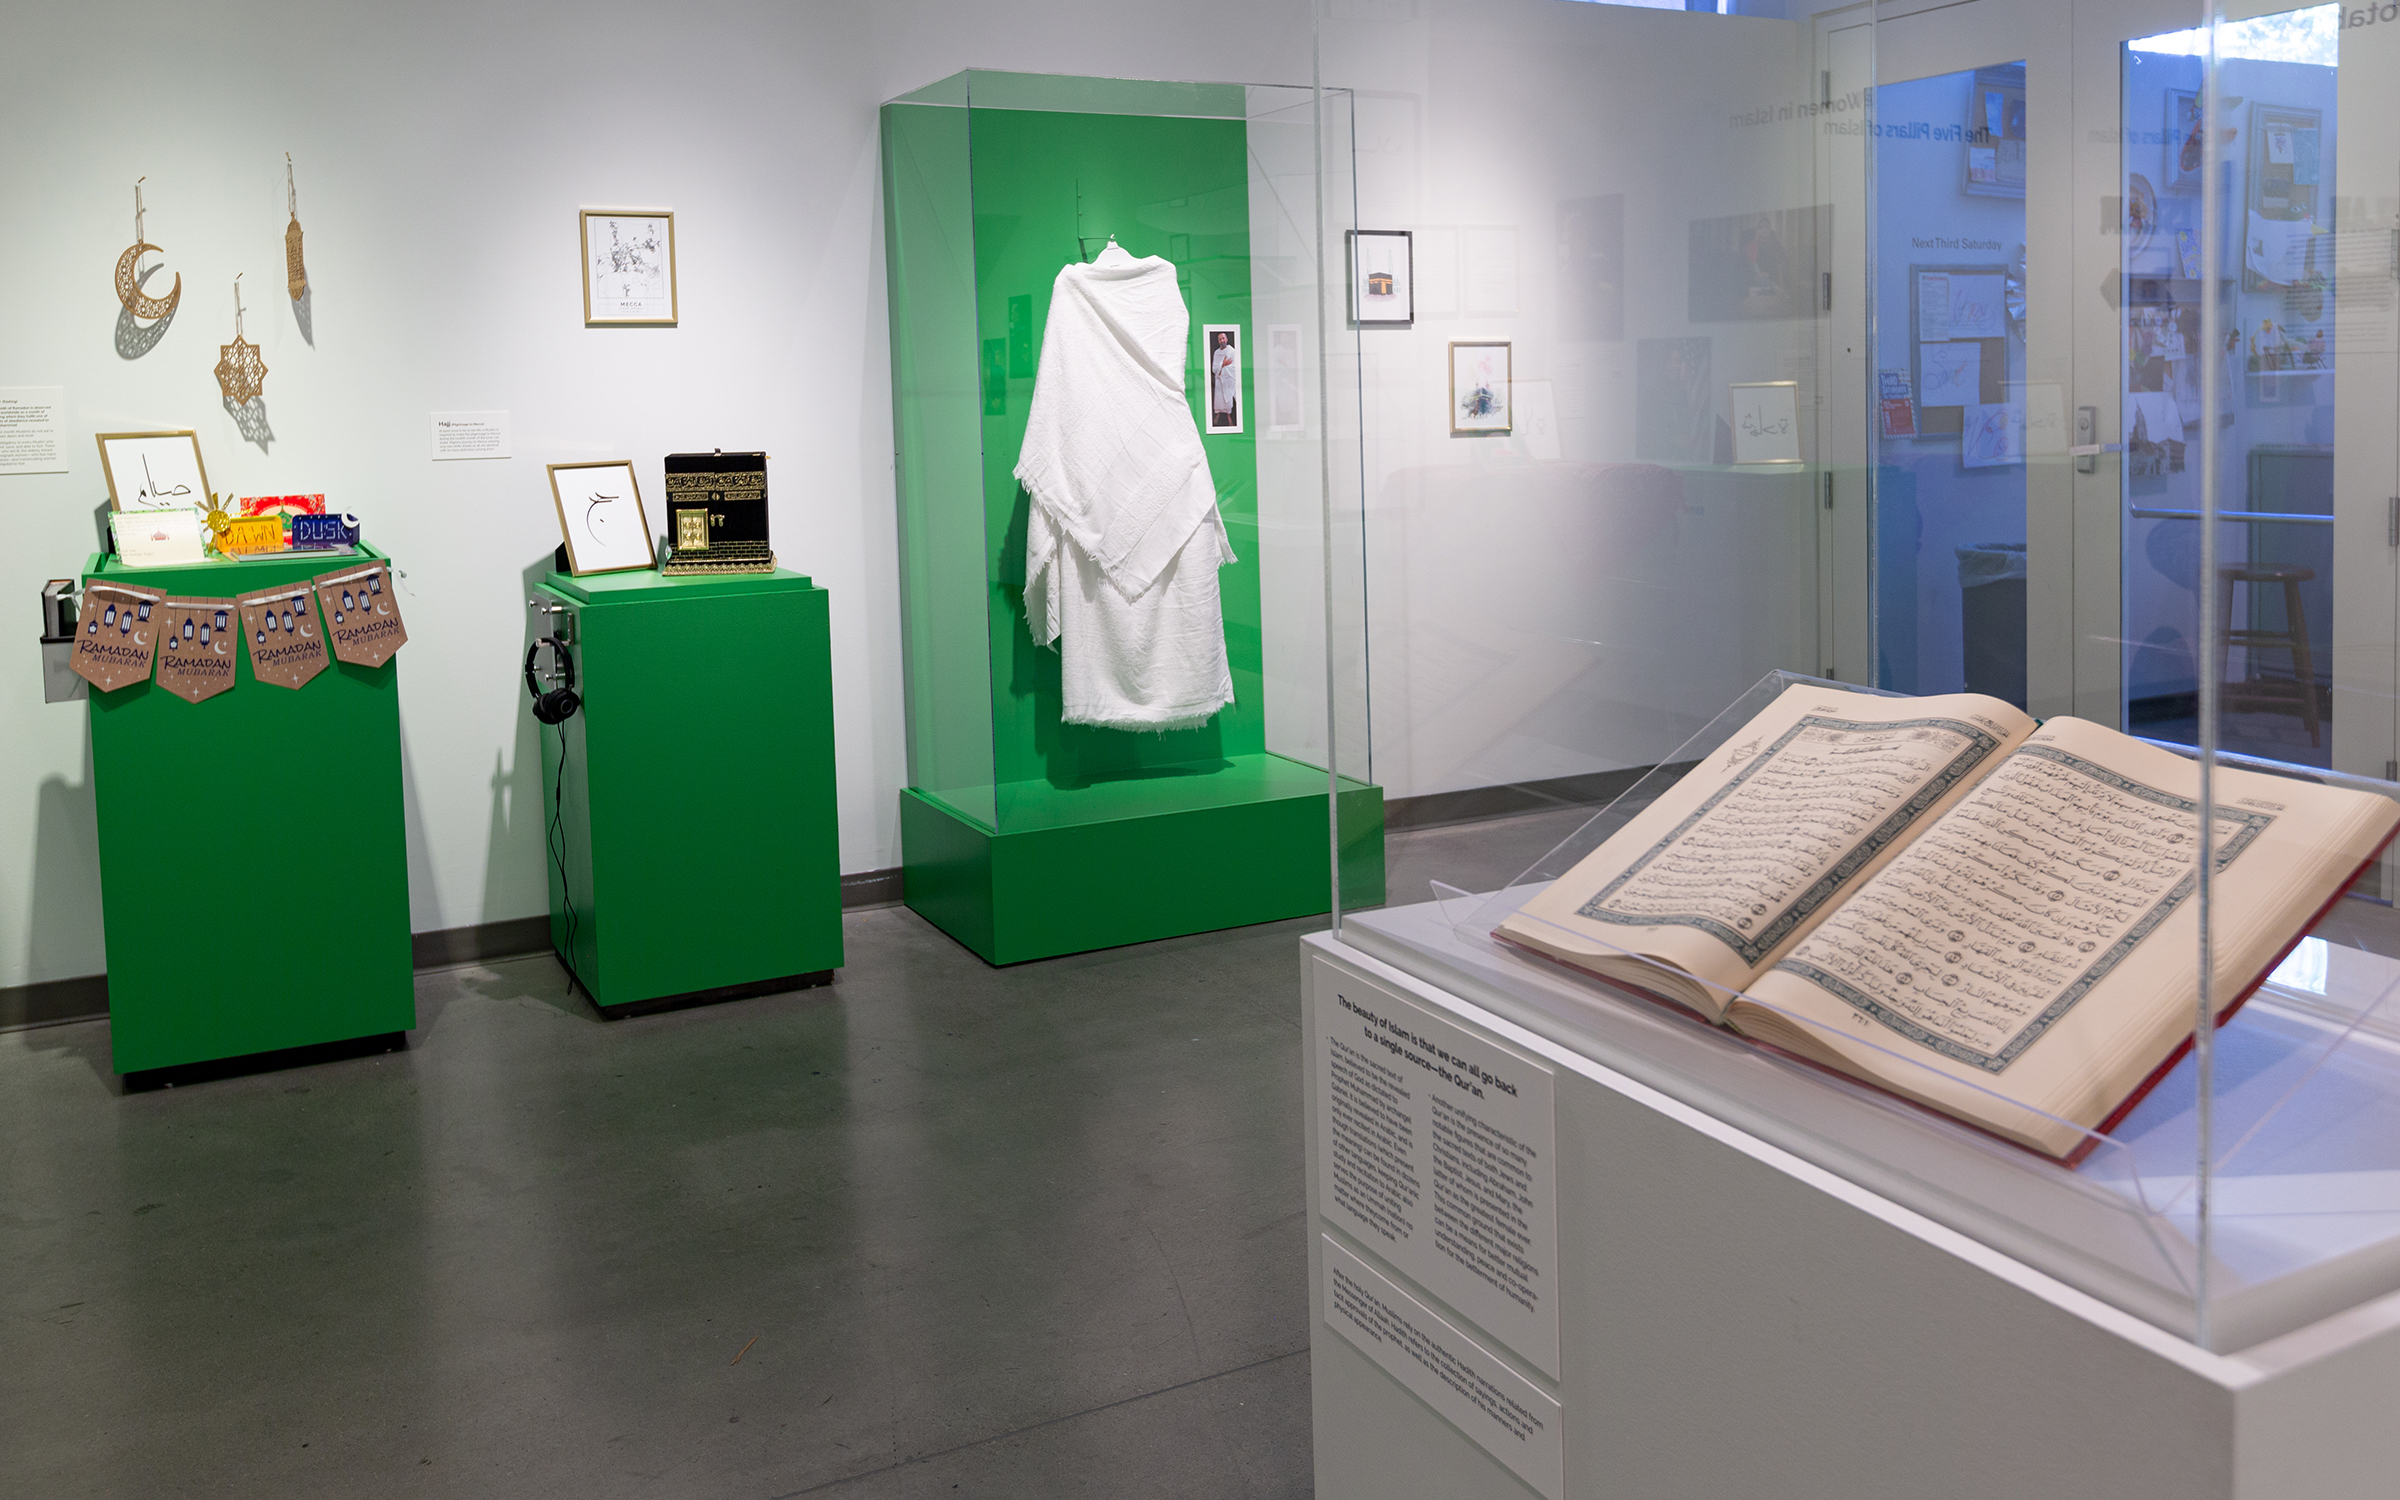 Ummah exhibition featuring the Quran and the foive pillars of Islam